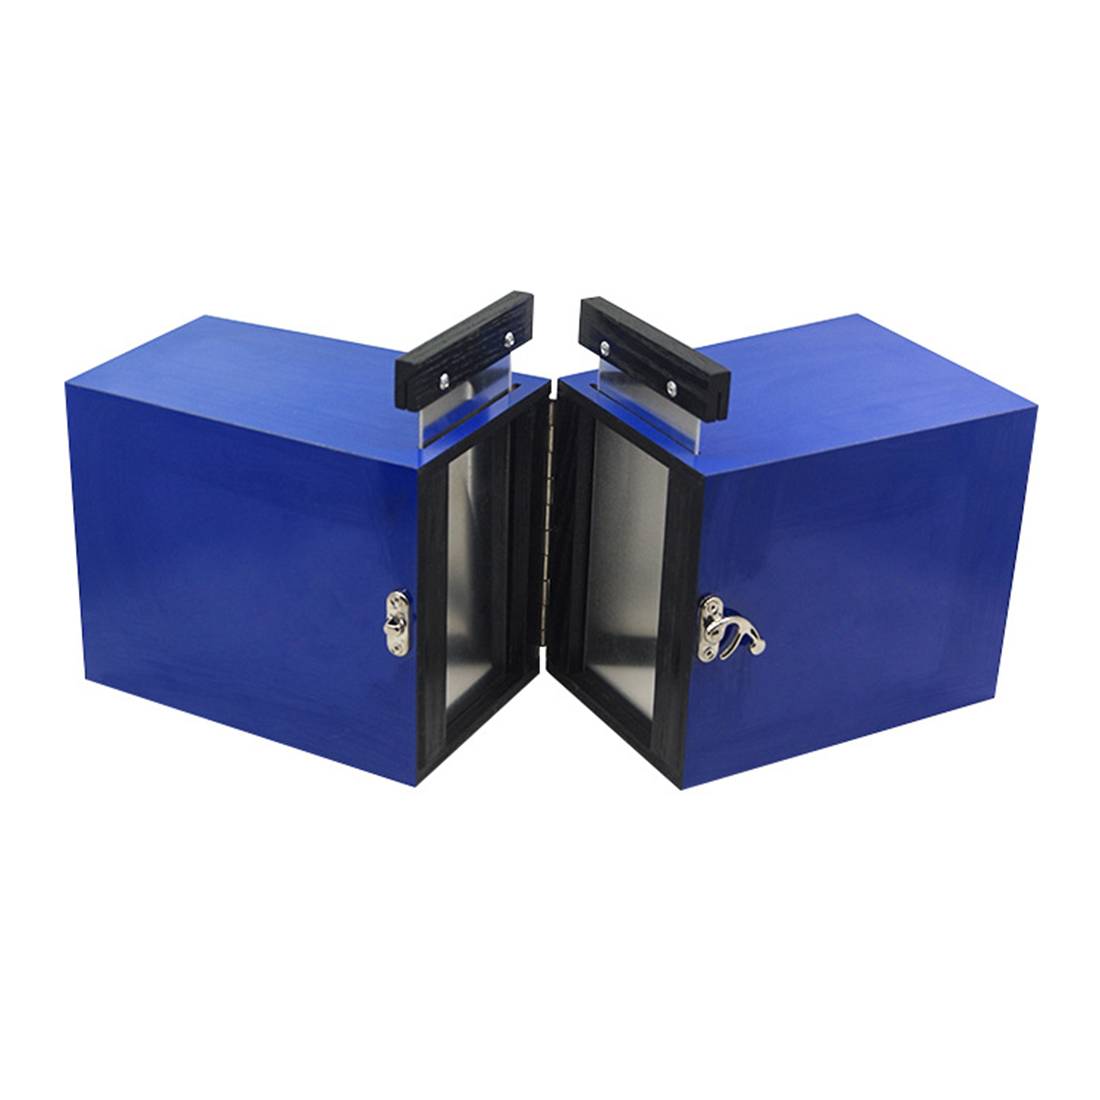 Dis Armed One-Person Portable Illusion Magic Tricks Magician Stage Gimmick Prop 2020 New Arrival